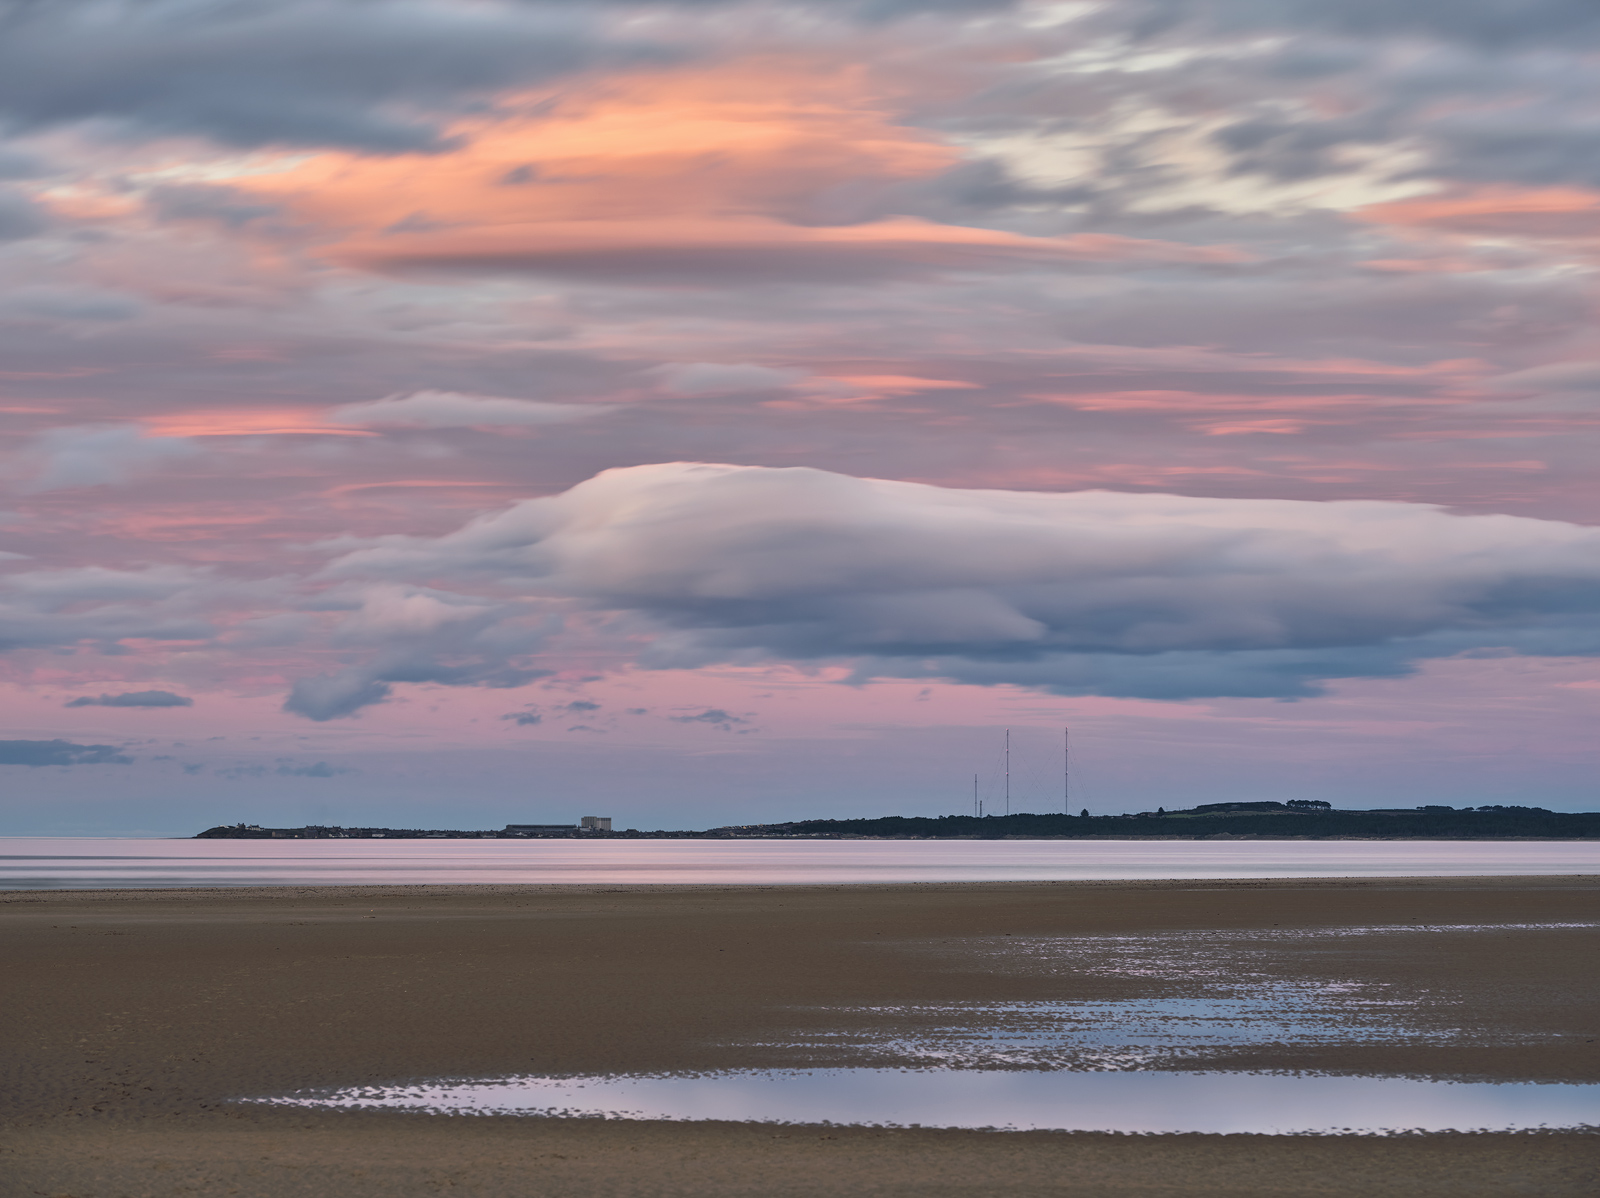 Salmon pink skies from a twilight wedge reinforce the delicate rainbow pastel shades of a stunning autumnal sunset above distant Burghead.